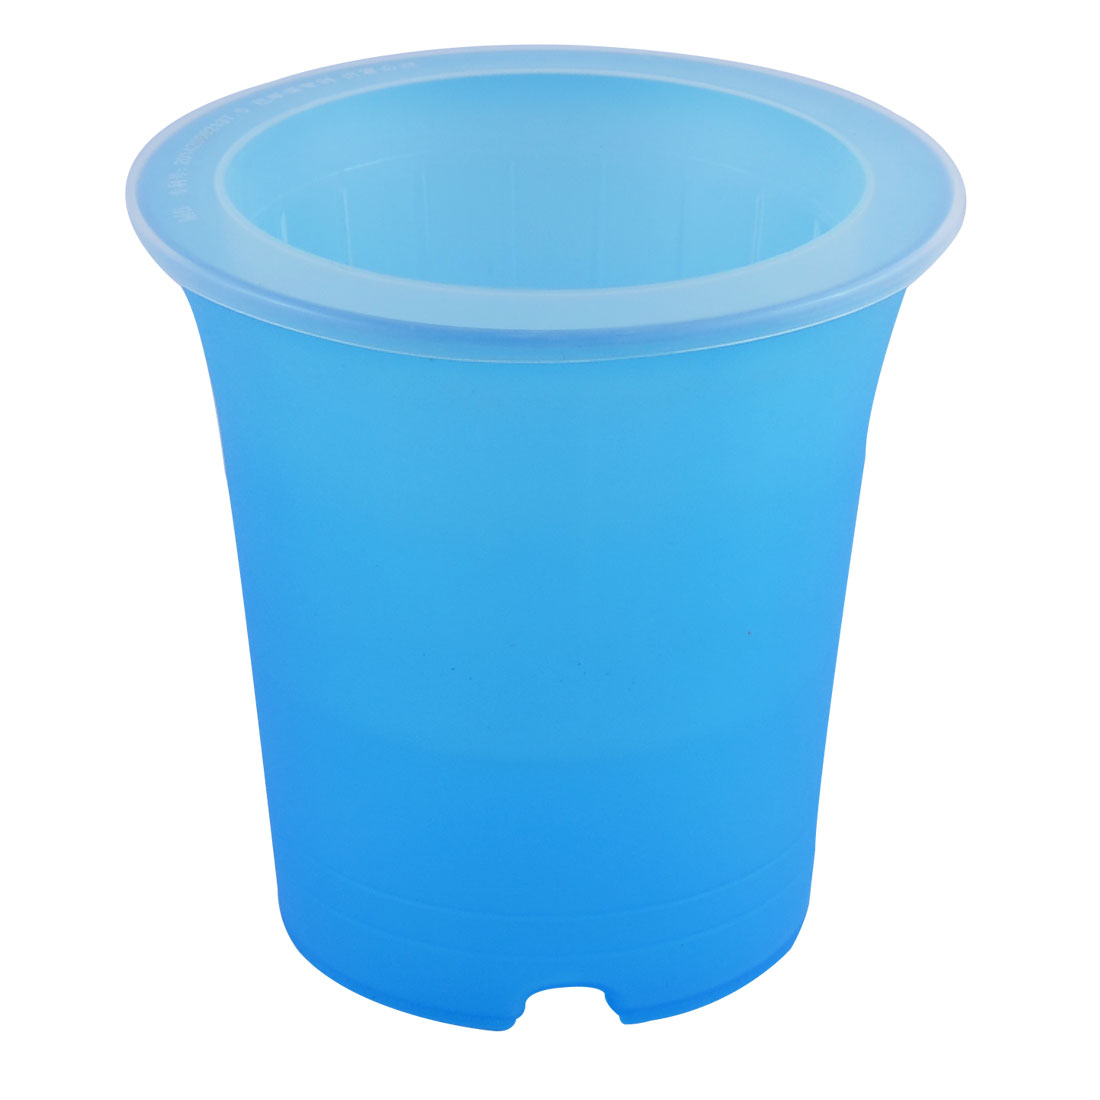 Balcony Tabletop Decor Plastic Flowerpot Self Watering Planter Container Blue